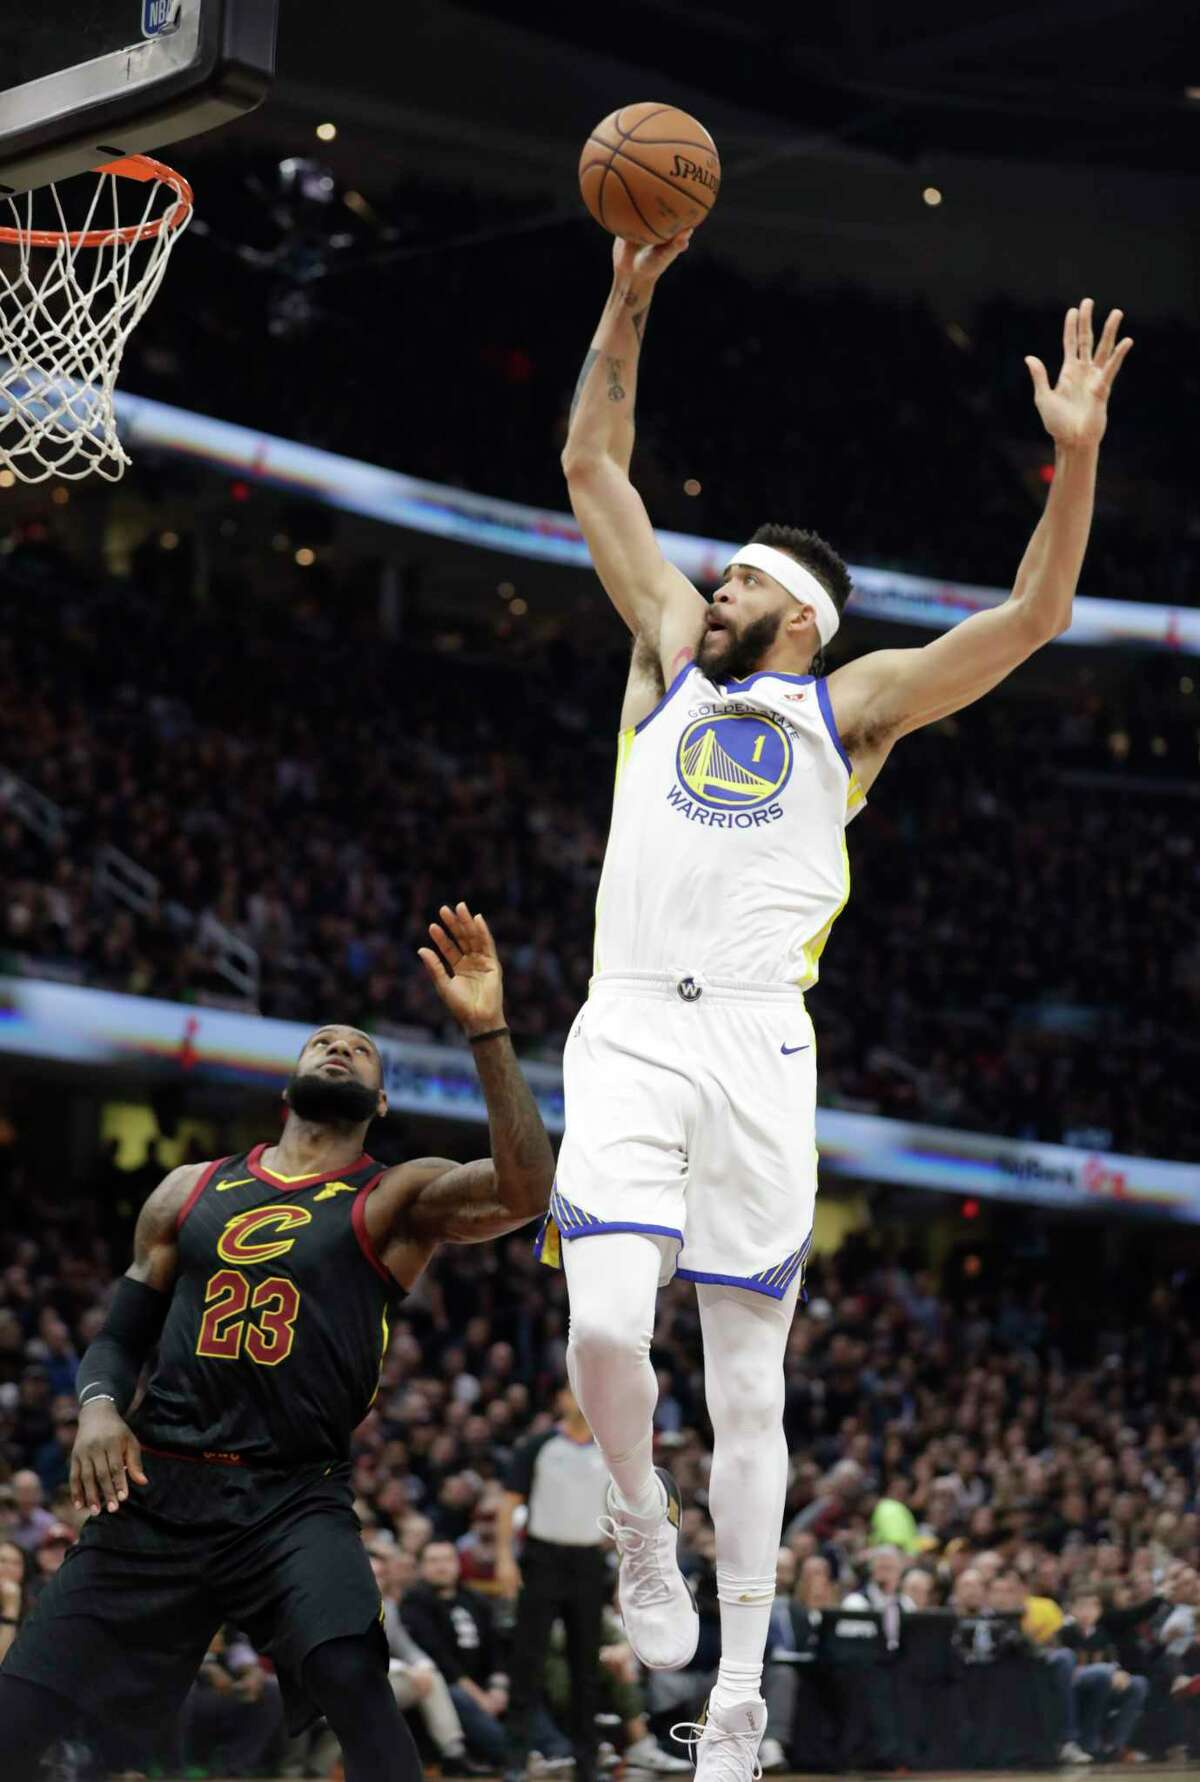 Warriors center JaVale McGee will be heading south to play for the Los Angeles Lakers, astride LeBron James, whose defection from the Cleveland Cavaliers stunned fans.